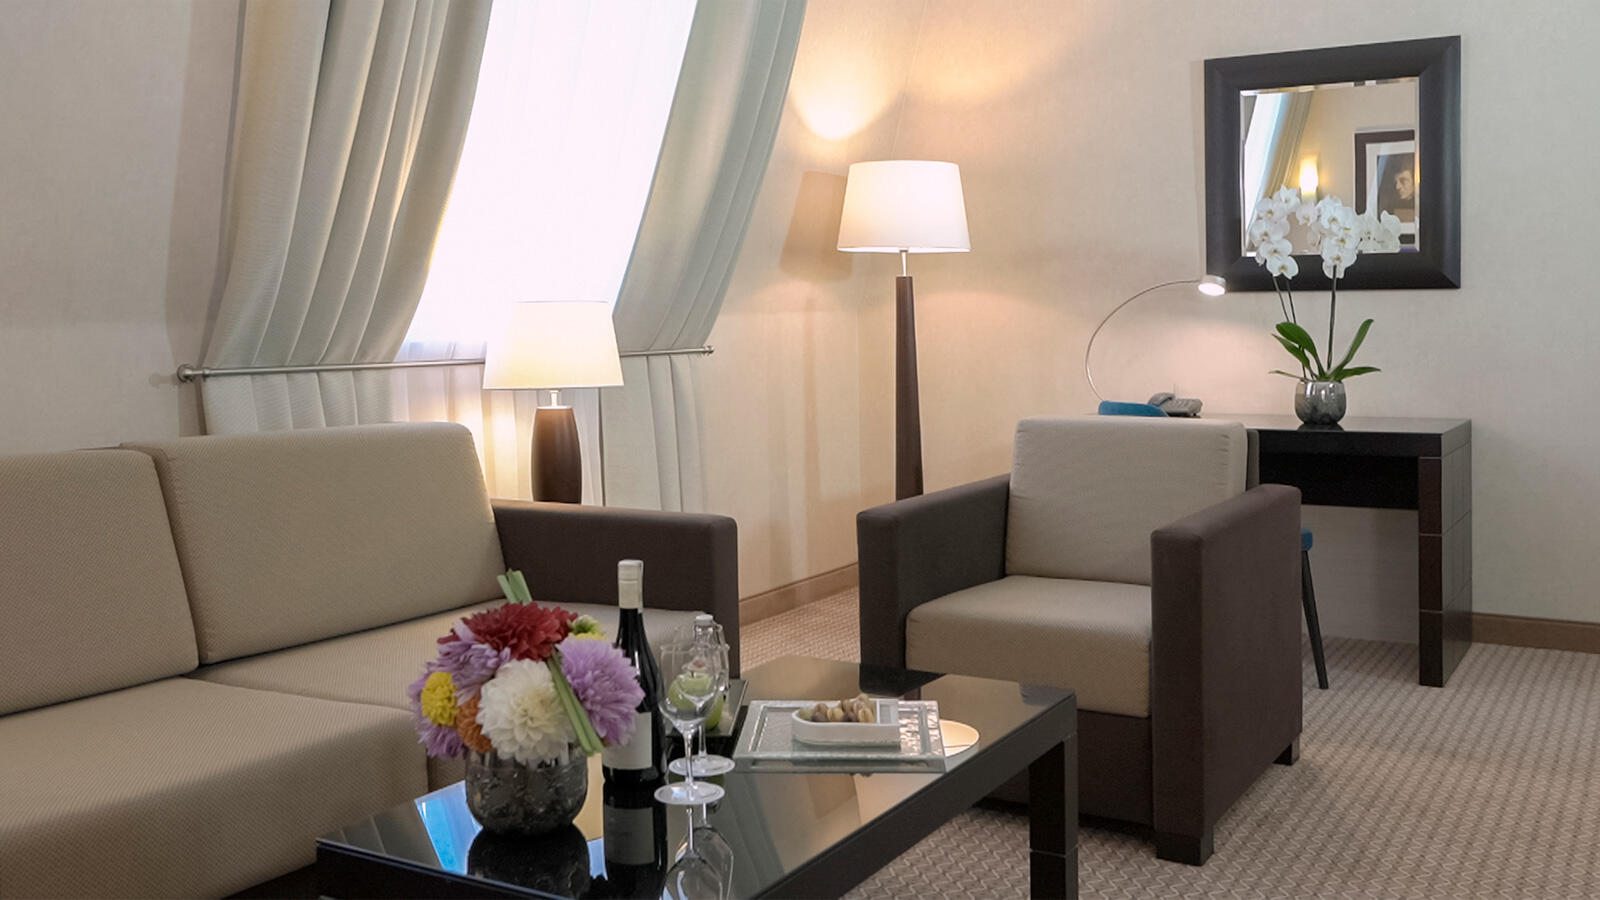 Suite at Polonia Palace Hotel, Warsaw